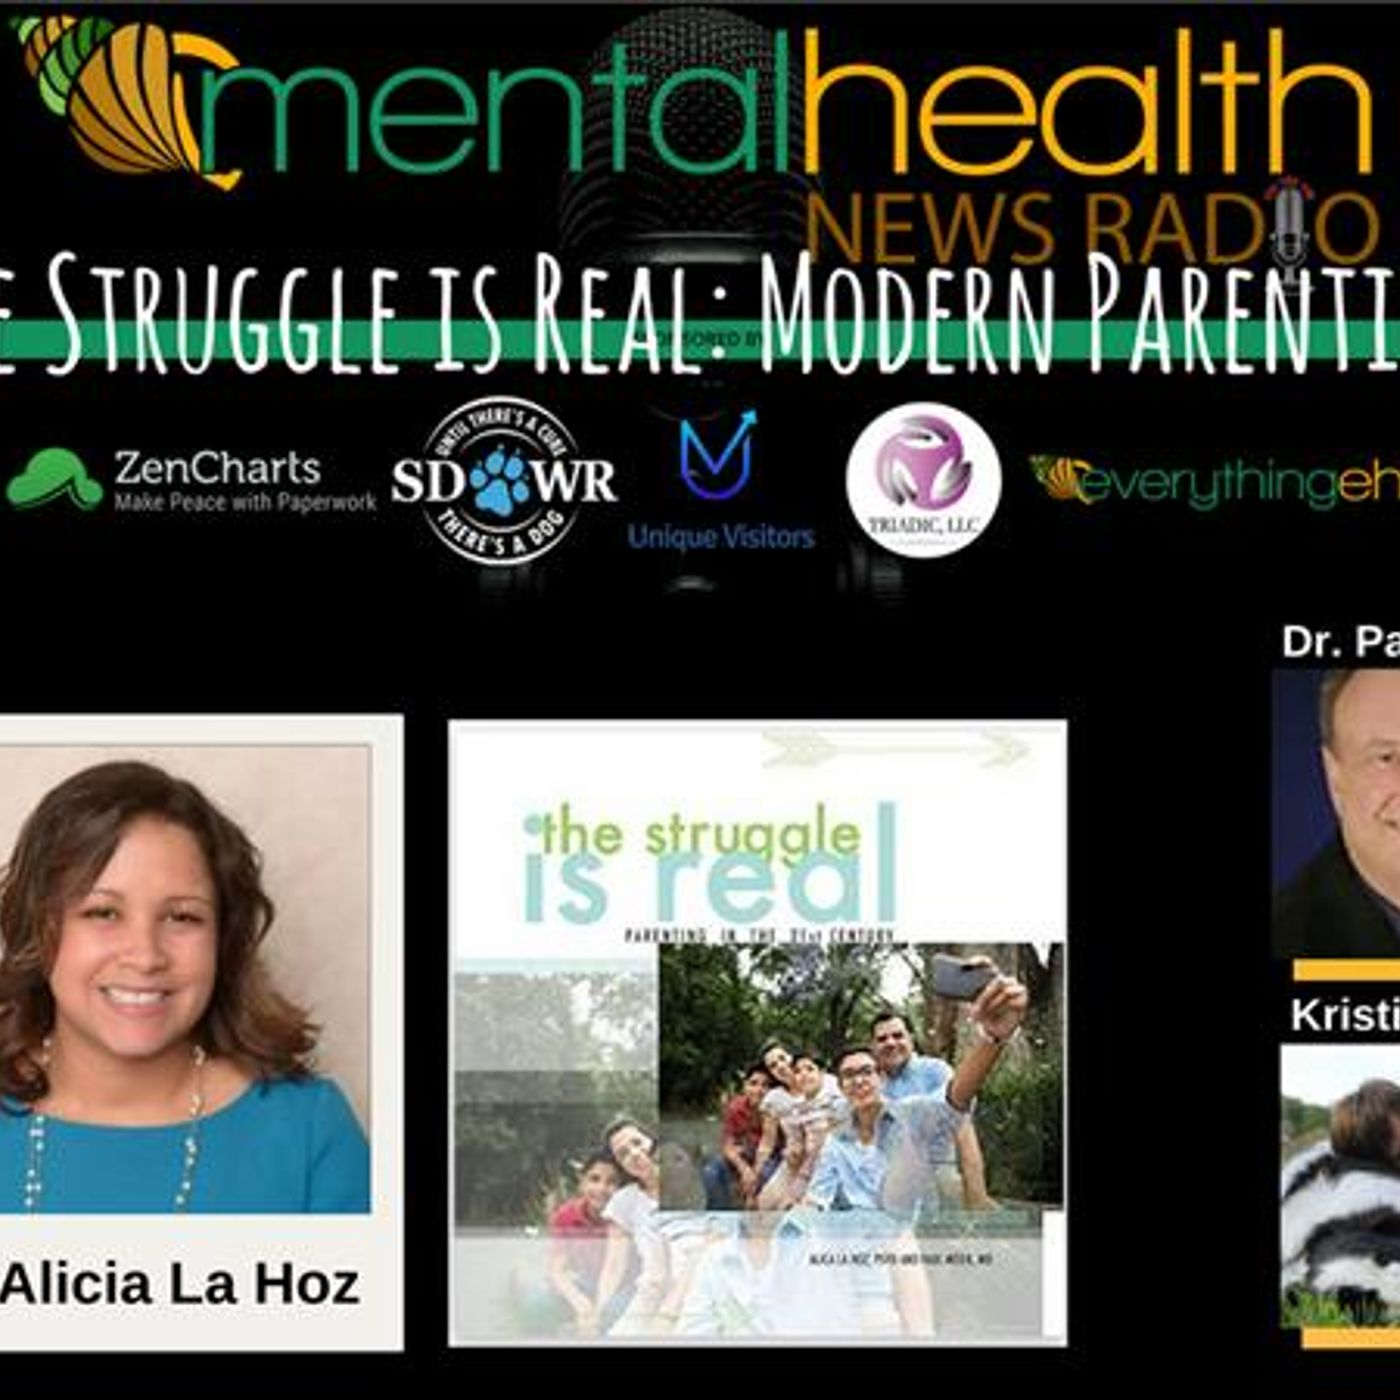 Mental Health News Radio - The Struggle is Real: Modern Parenting with Dr. Alicia La Hoz